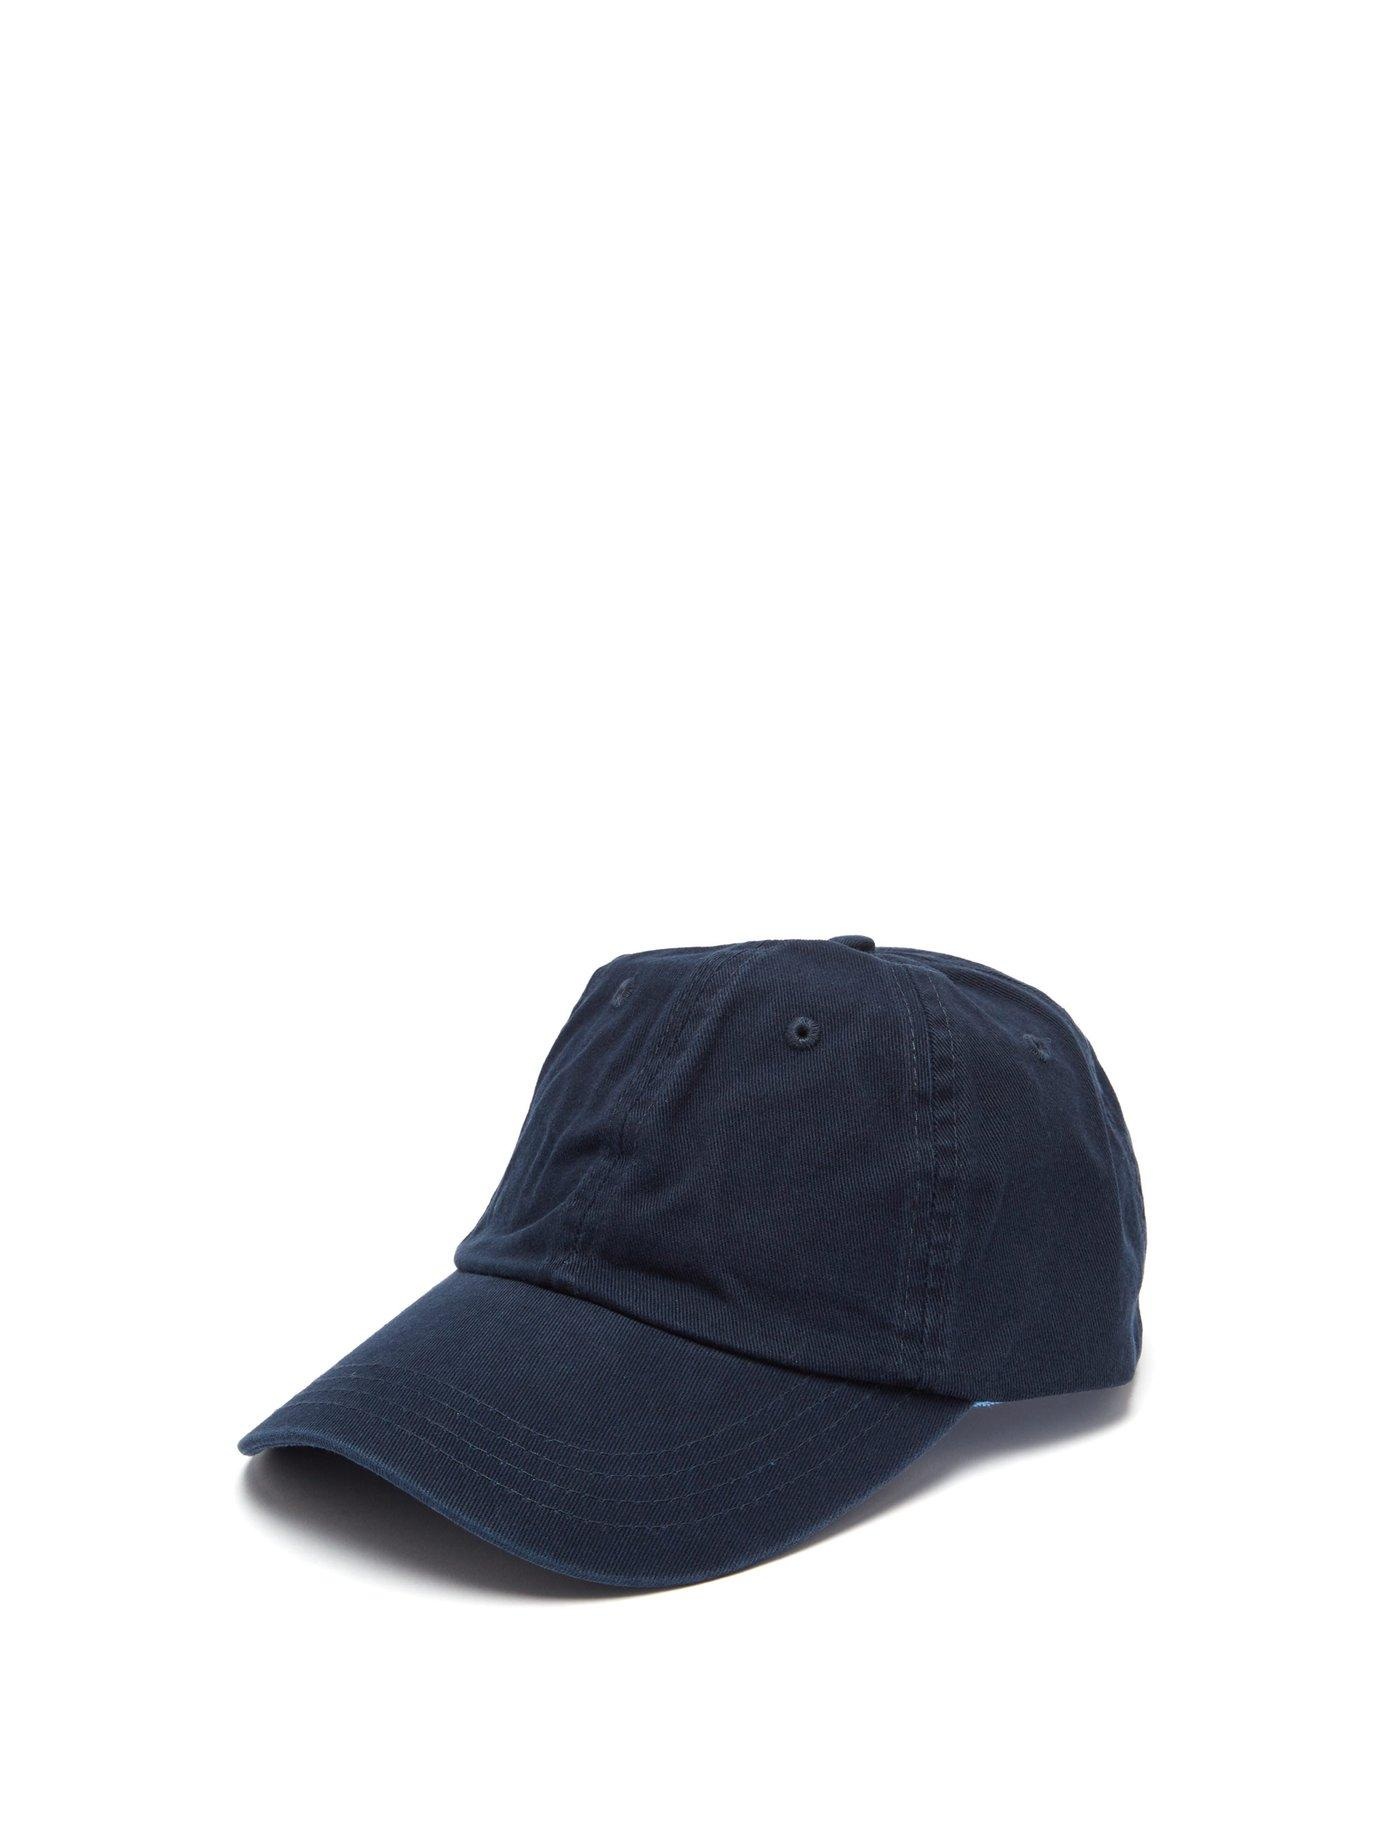 392a16c091a021 Lyst - Orlebar Brown Beesley Cotton Canvas Cap in Blue for Men